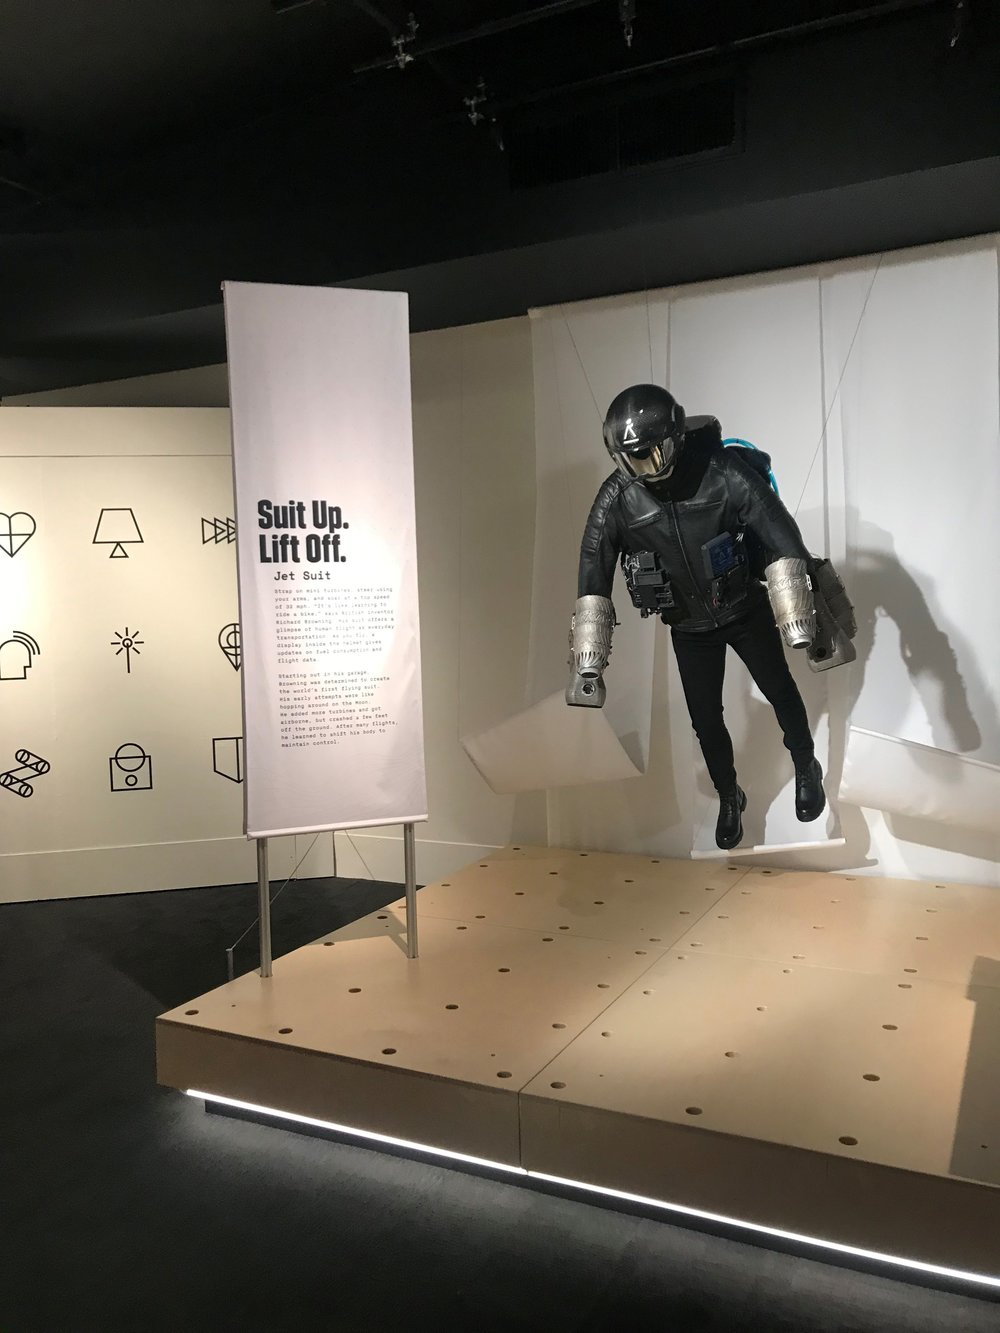 Browning's jet suit is on display as part of the wearable tech exhibit 'Wired to Wear'